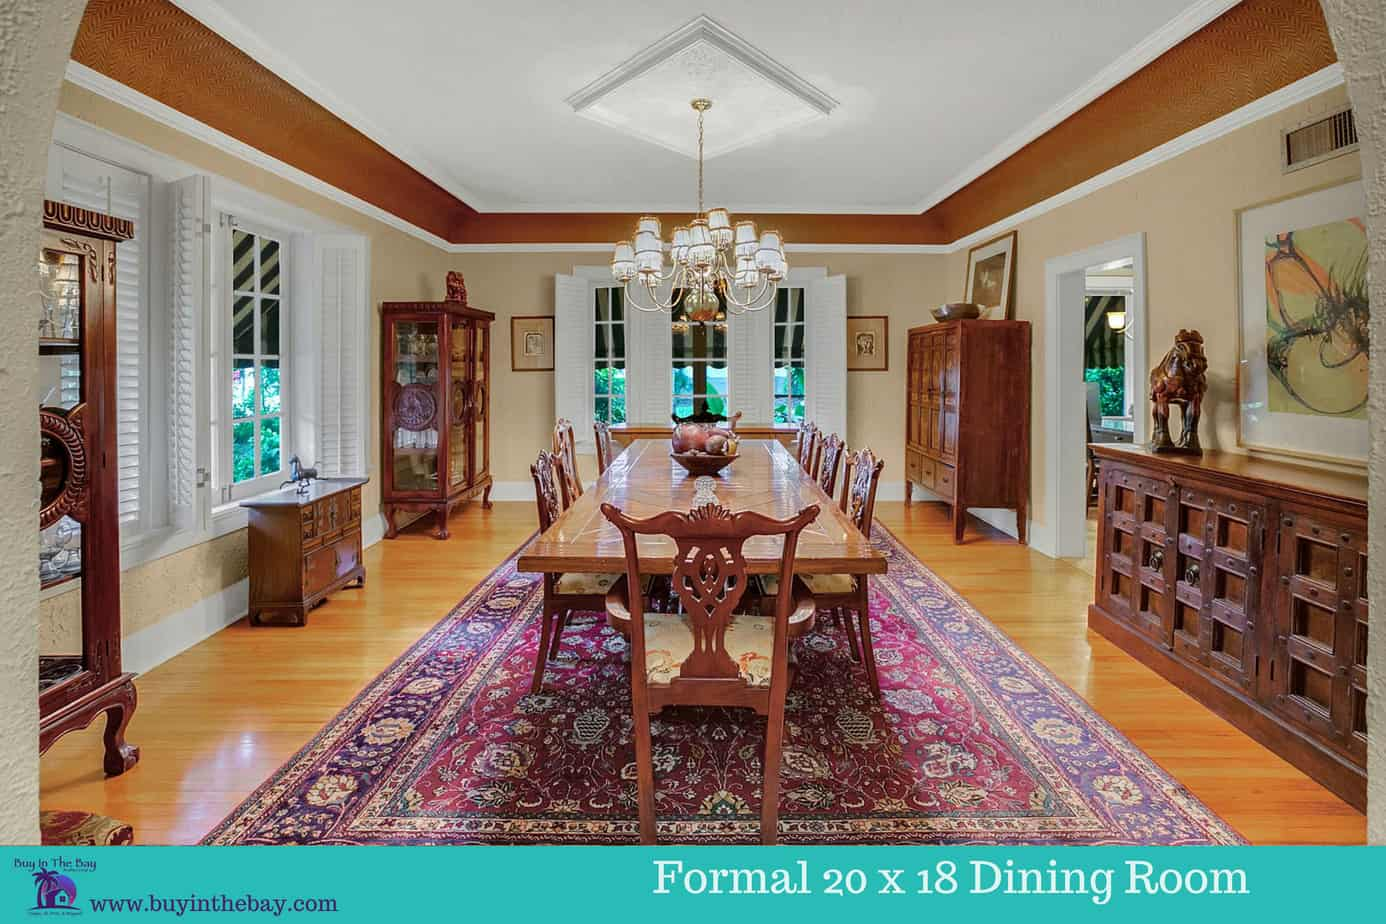 Formal 20 x 18 Dining Room With large dining table with that seats 10, wood floors, large window, and decorative light fixture for the home for sale at 4024 W Bay To Bay Blvd Tampa FL 33629. A perfect Example of a Historic Homes in Florida and a Tampa Bay Luxury Homes For sale.